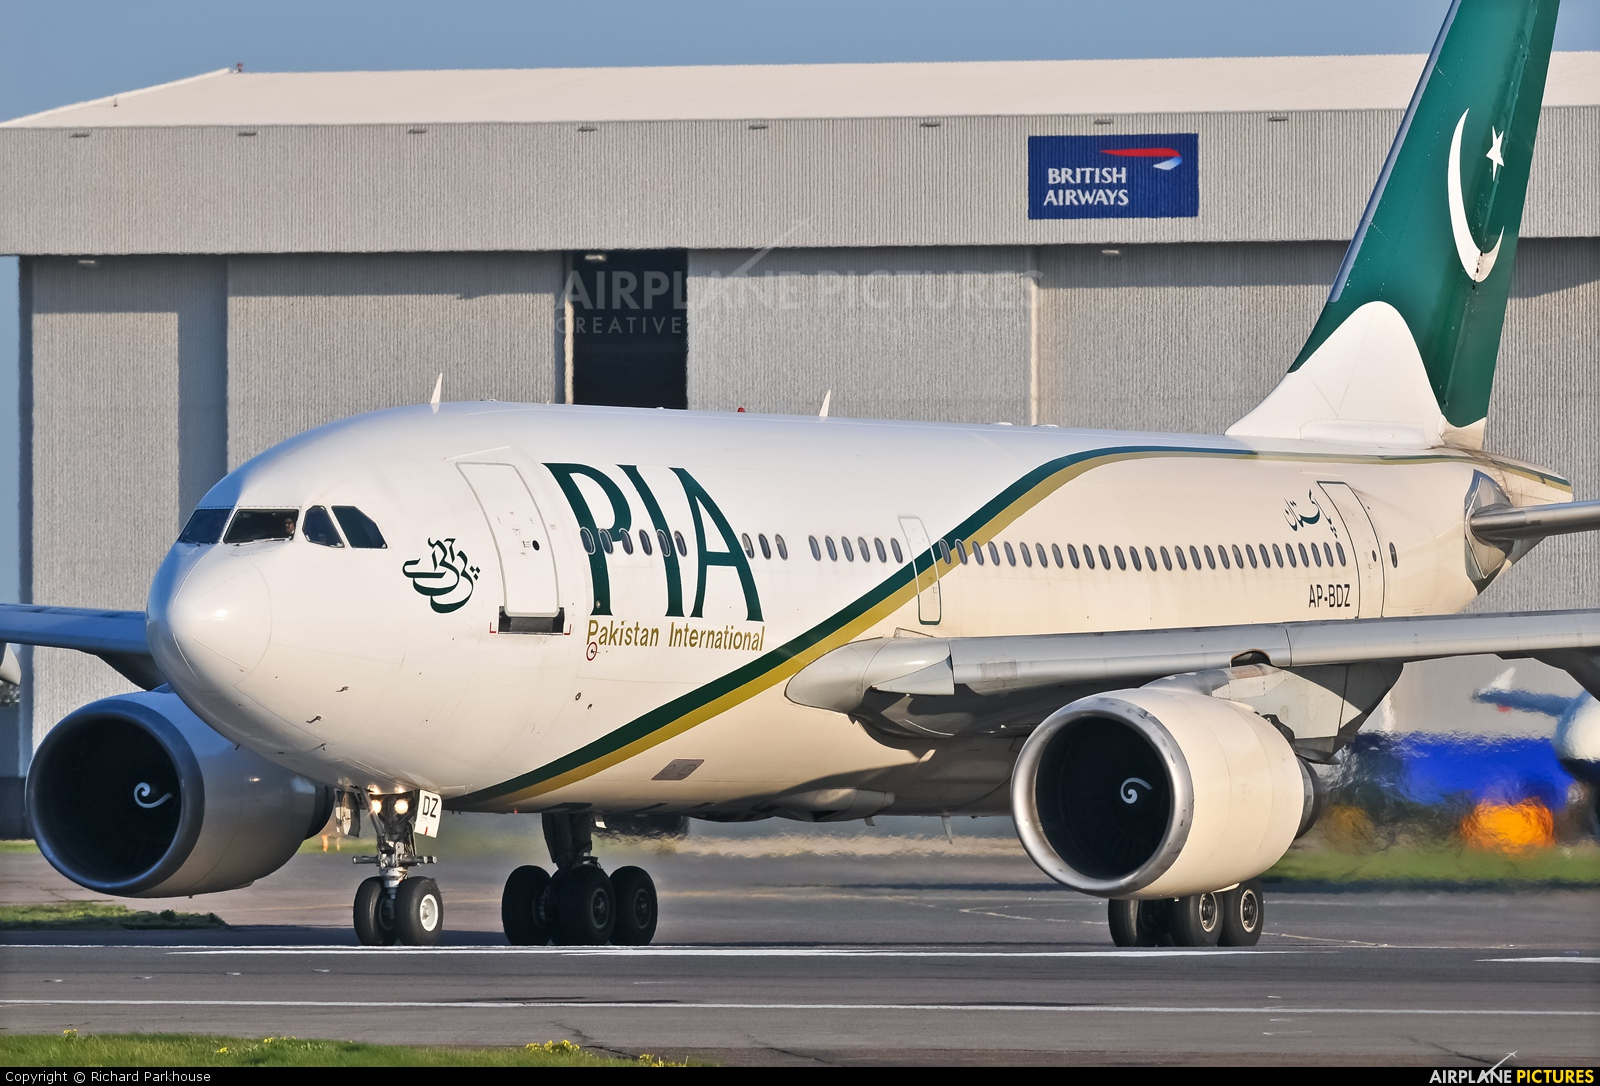 PIA - Pakistan International Airlines AP-BDZ aircraft at London - Heathrow